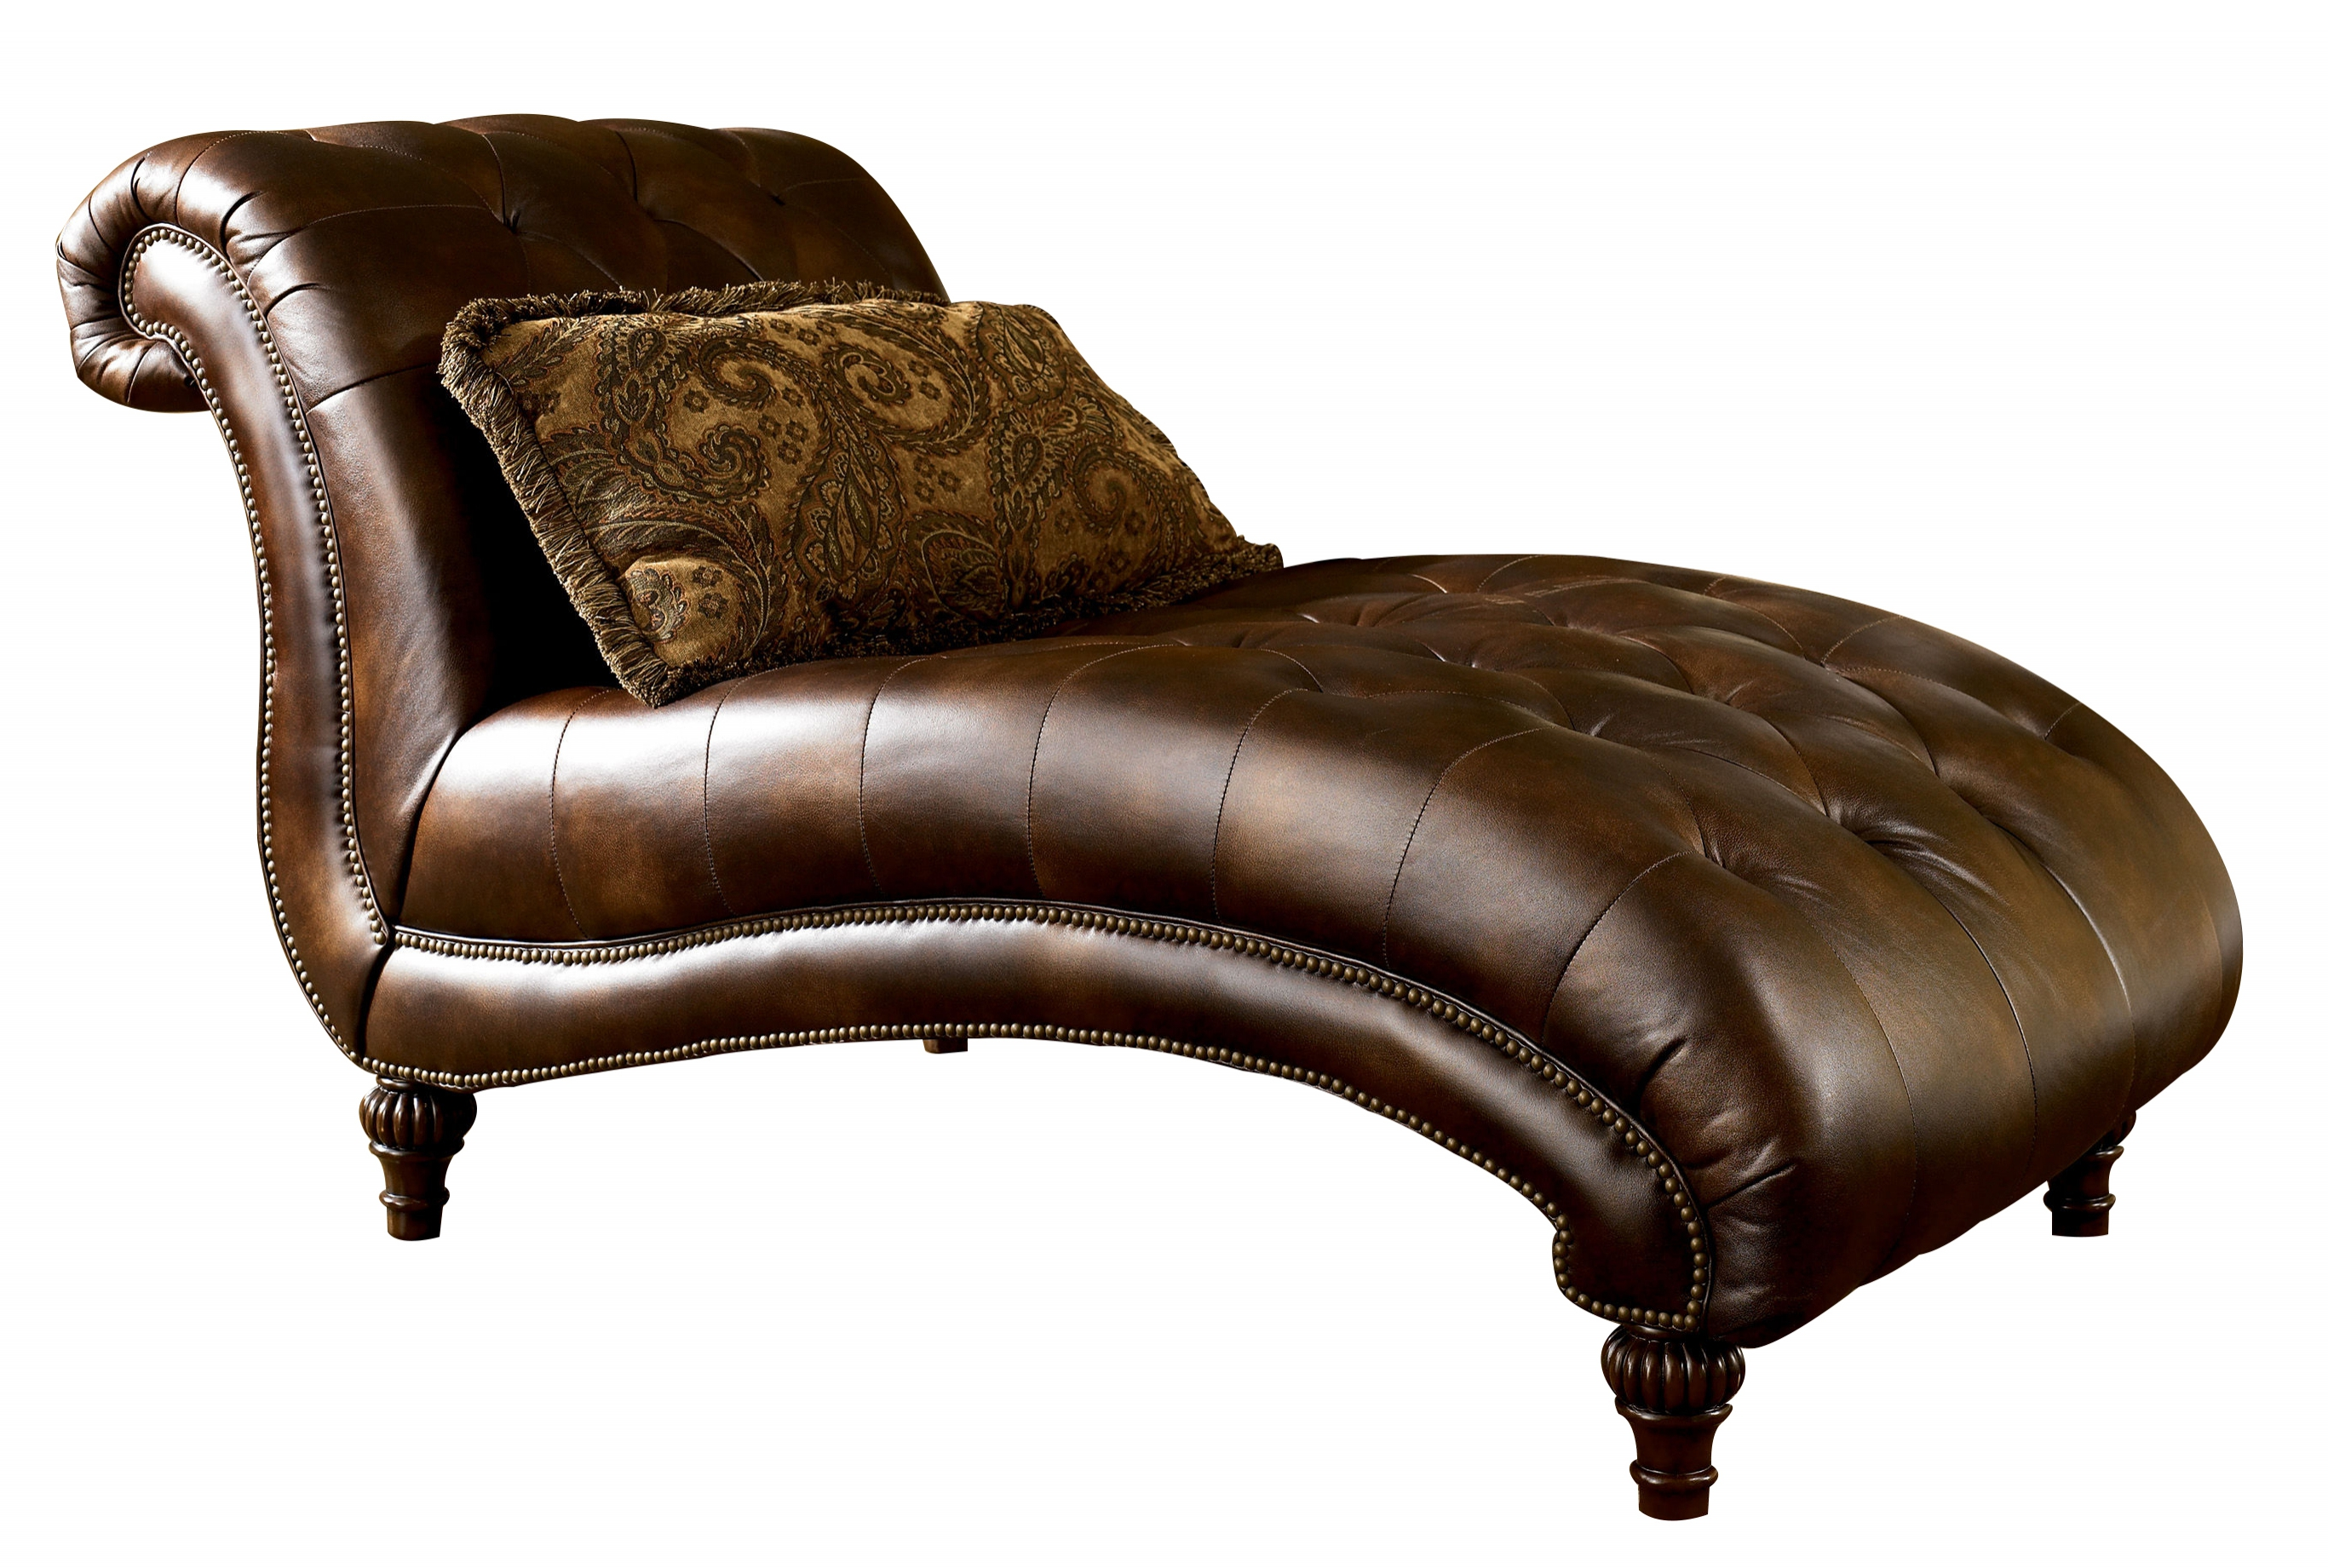 Ashley Furniture Claremore Antique Chaise To Enlarge